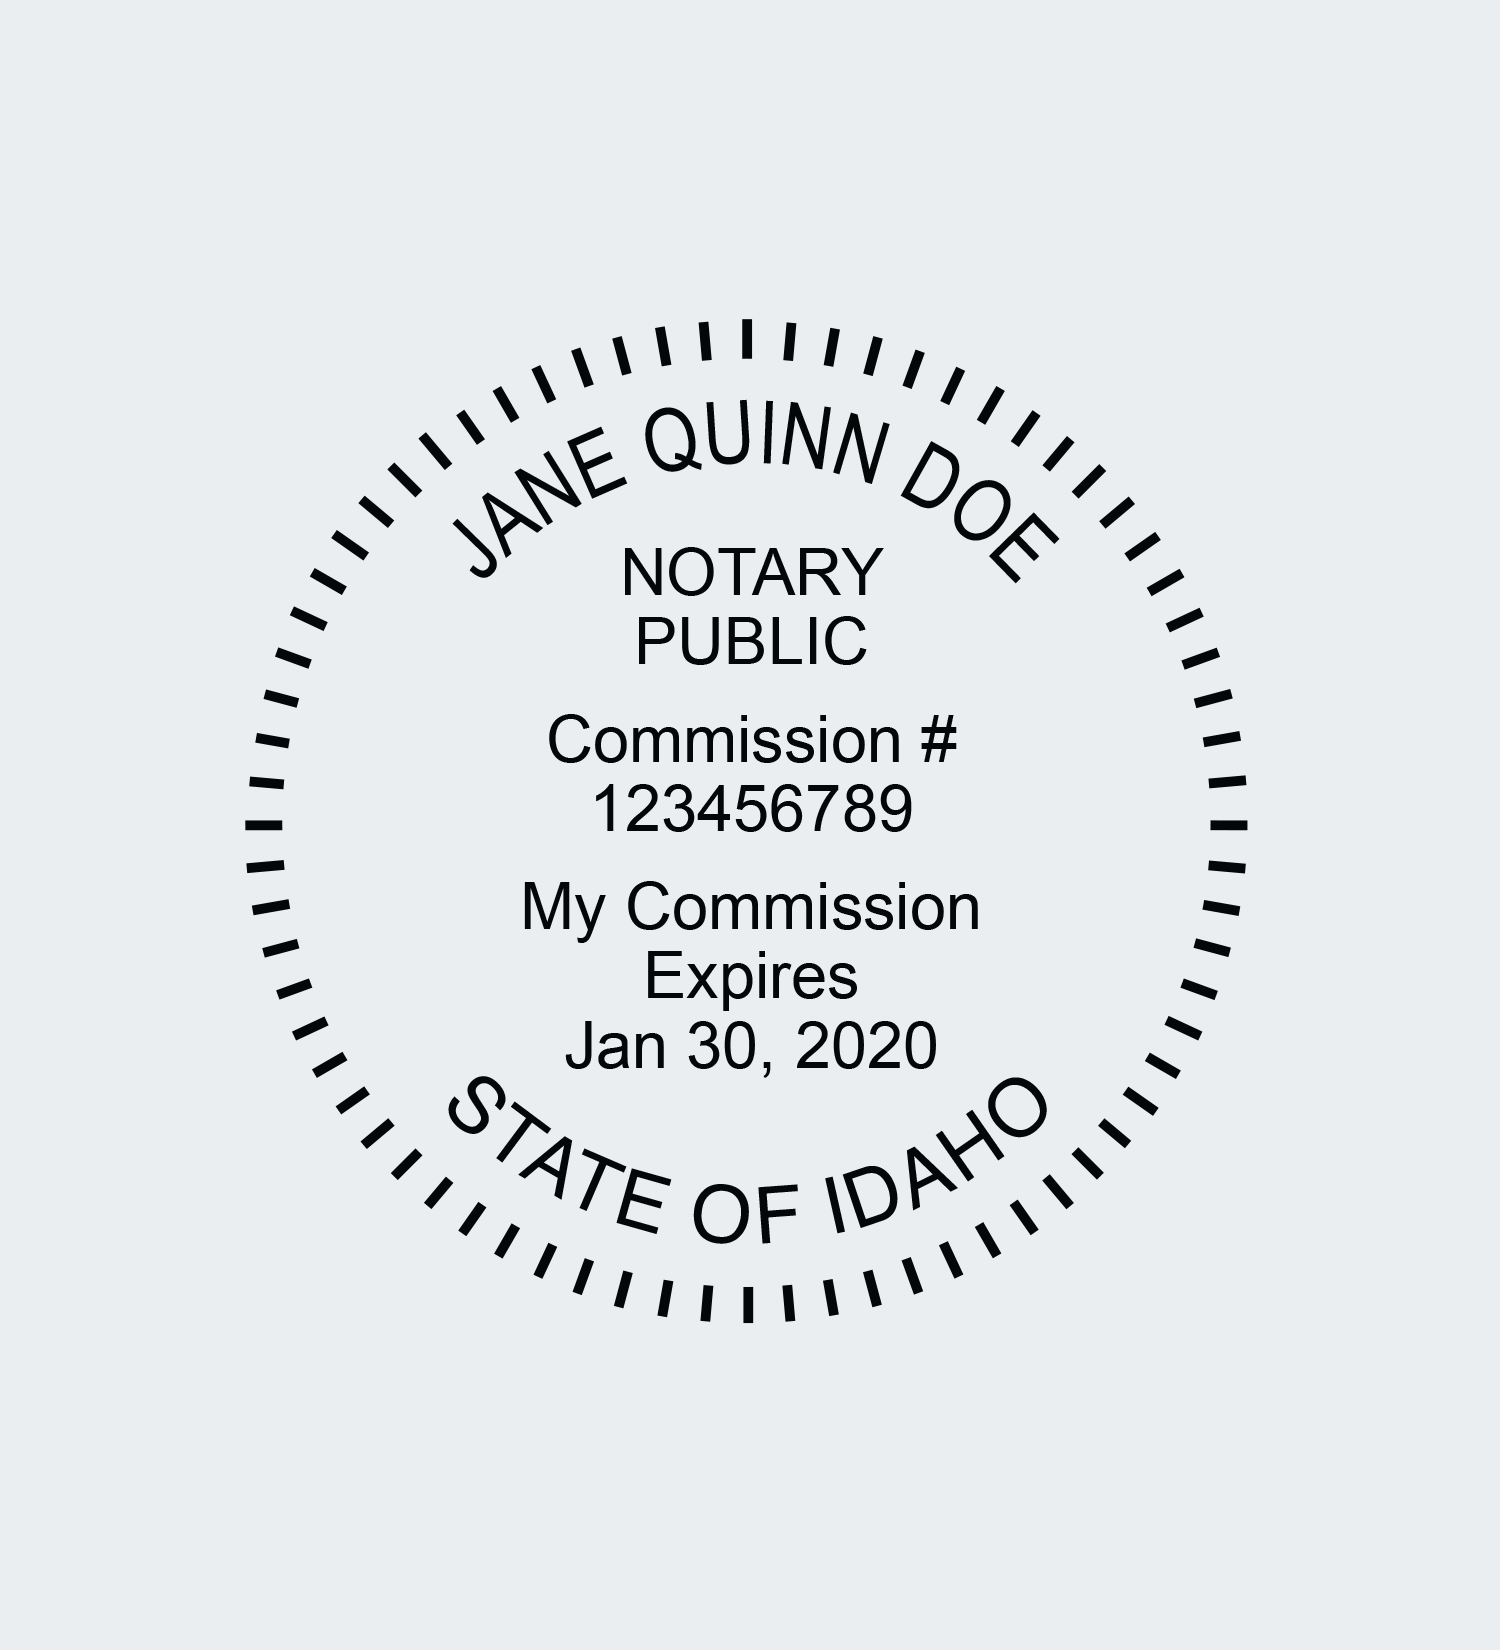 00000-Notary-Seal-Stamp-Impression-Idaho-round-4line.png